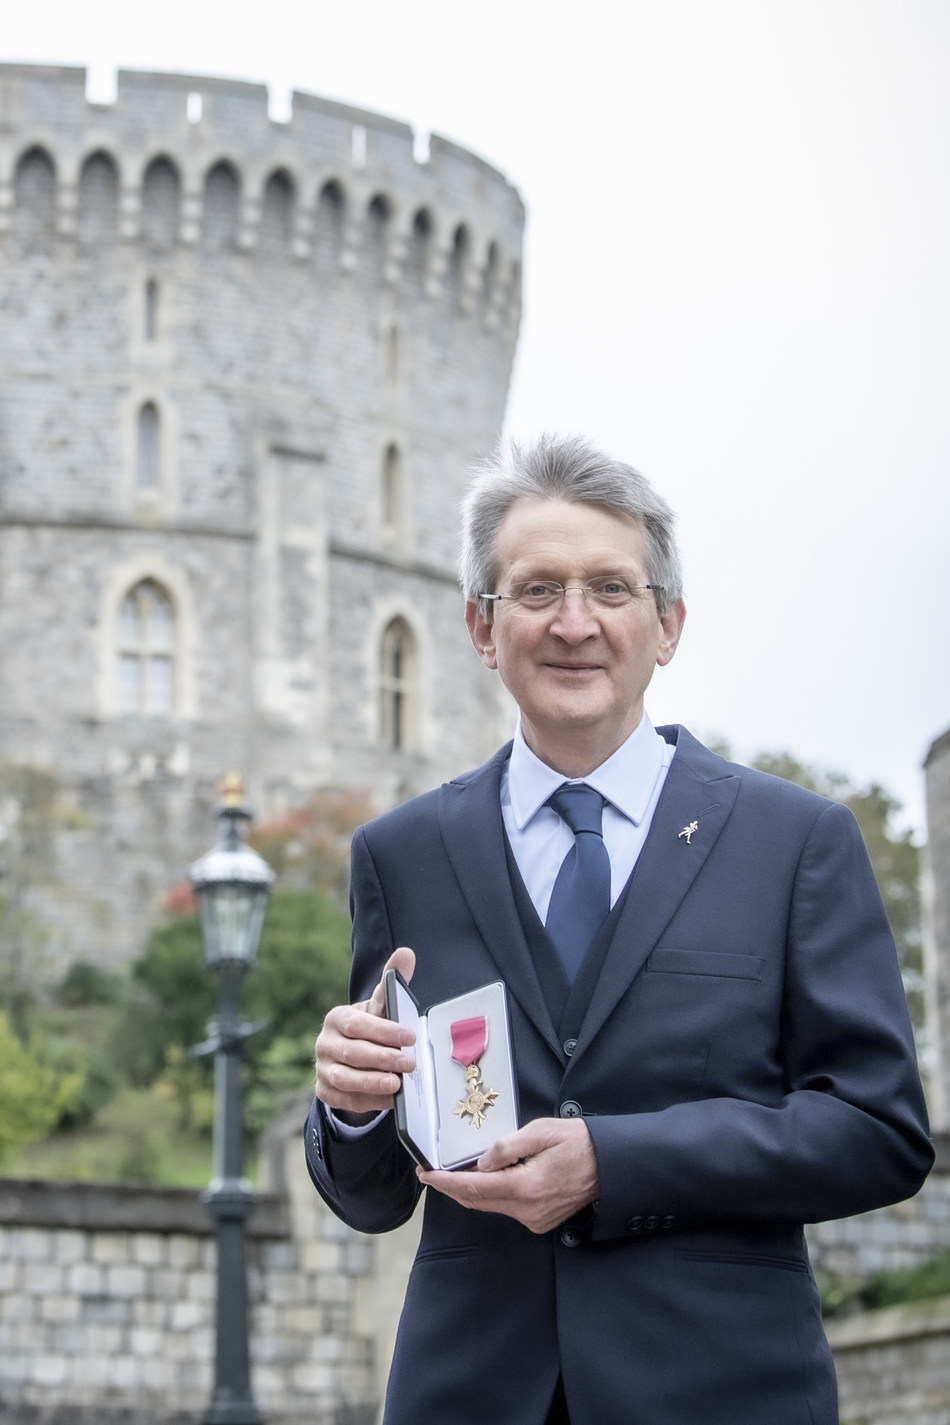 Dr. Jim Beveridge with his OBE award outside Windsor Castle.